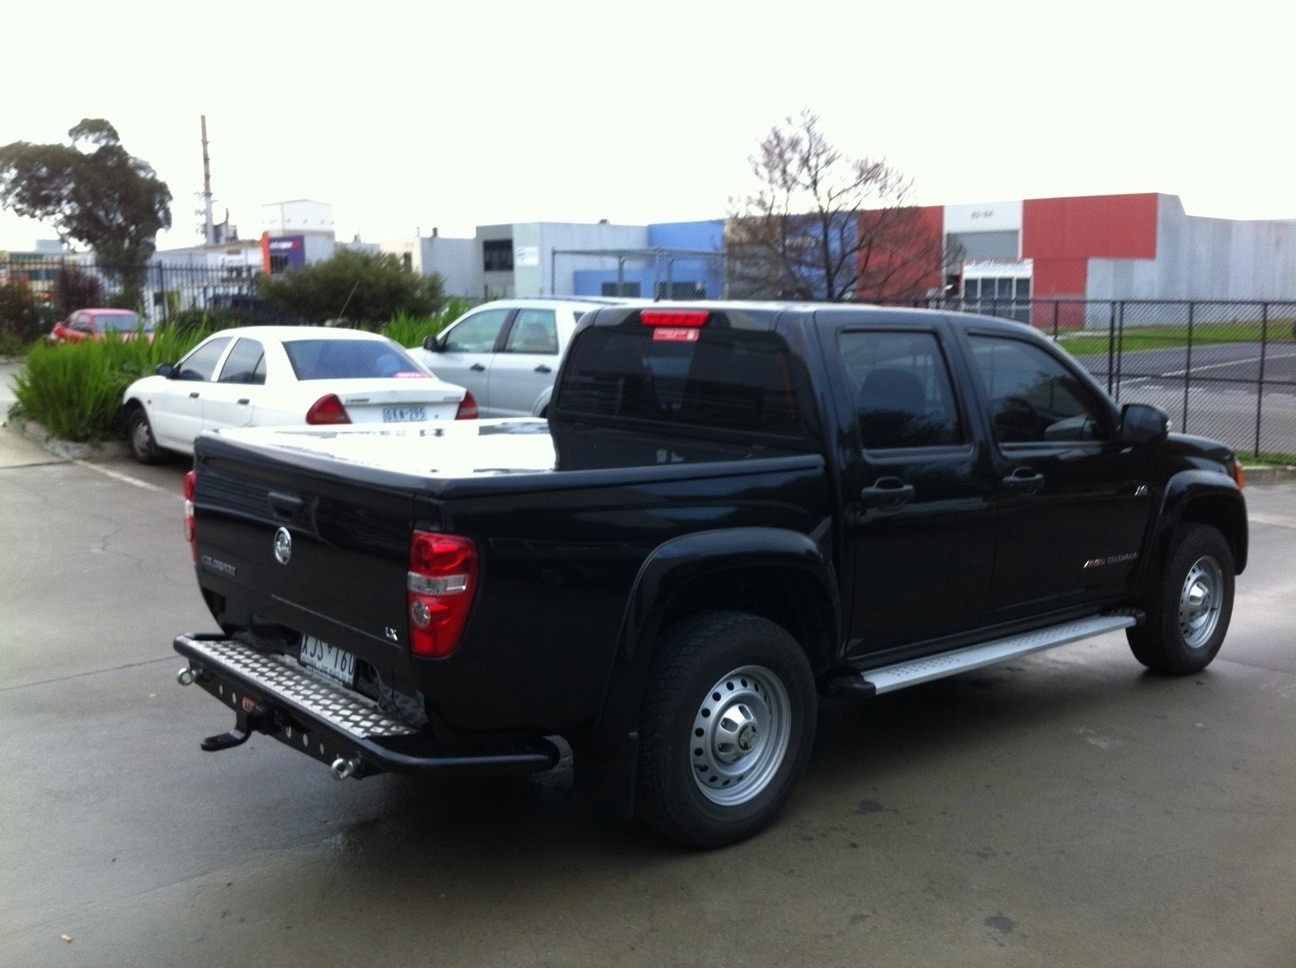 Holden-Rodeo  Colorado RC /Isuzu Dmax Double Cab Flat Top